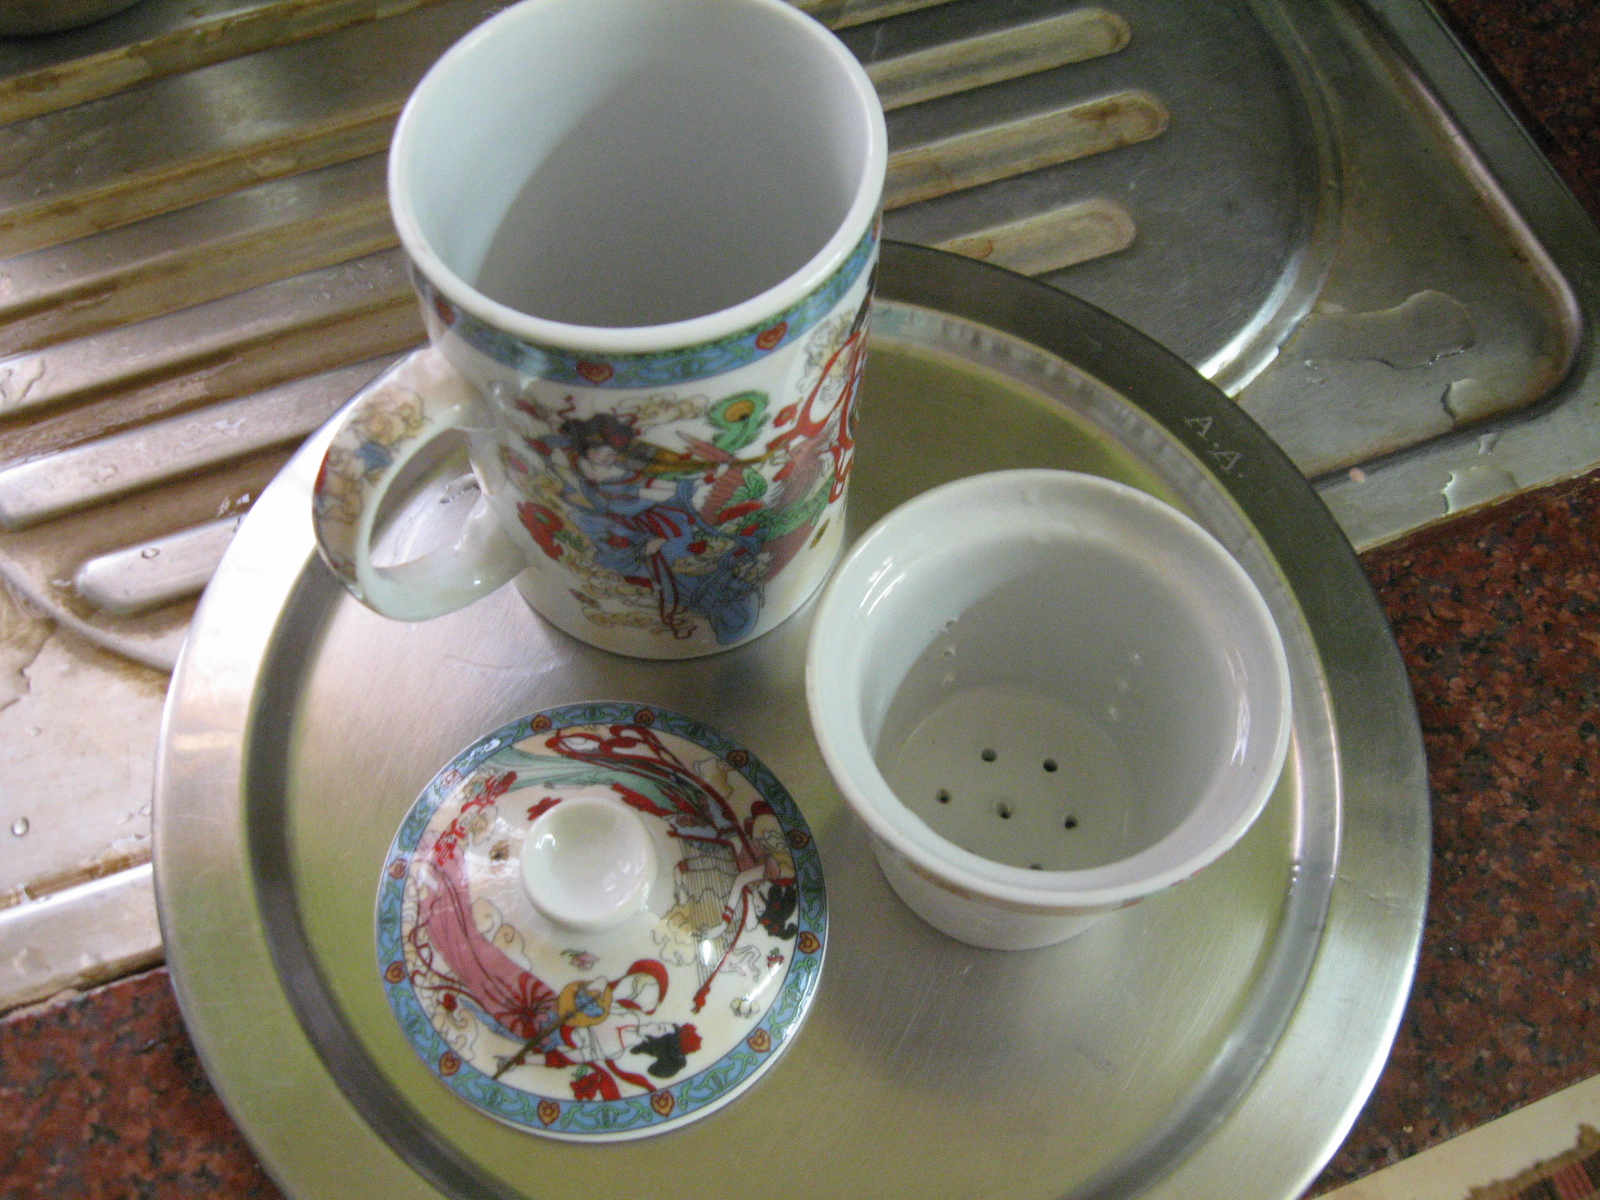 Picture of Green Tea Leaves and Tea Pot for Making Green Tea